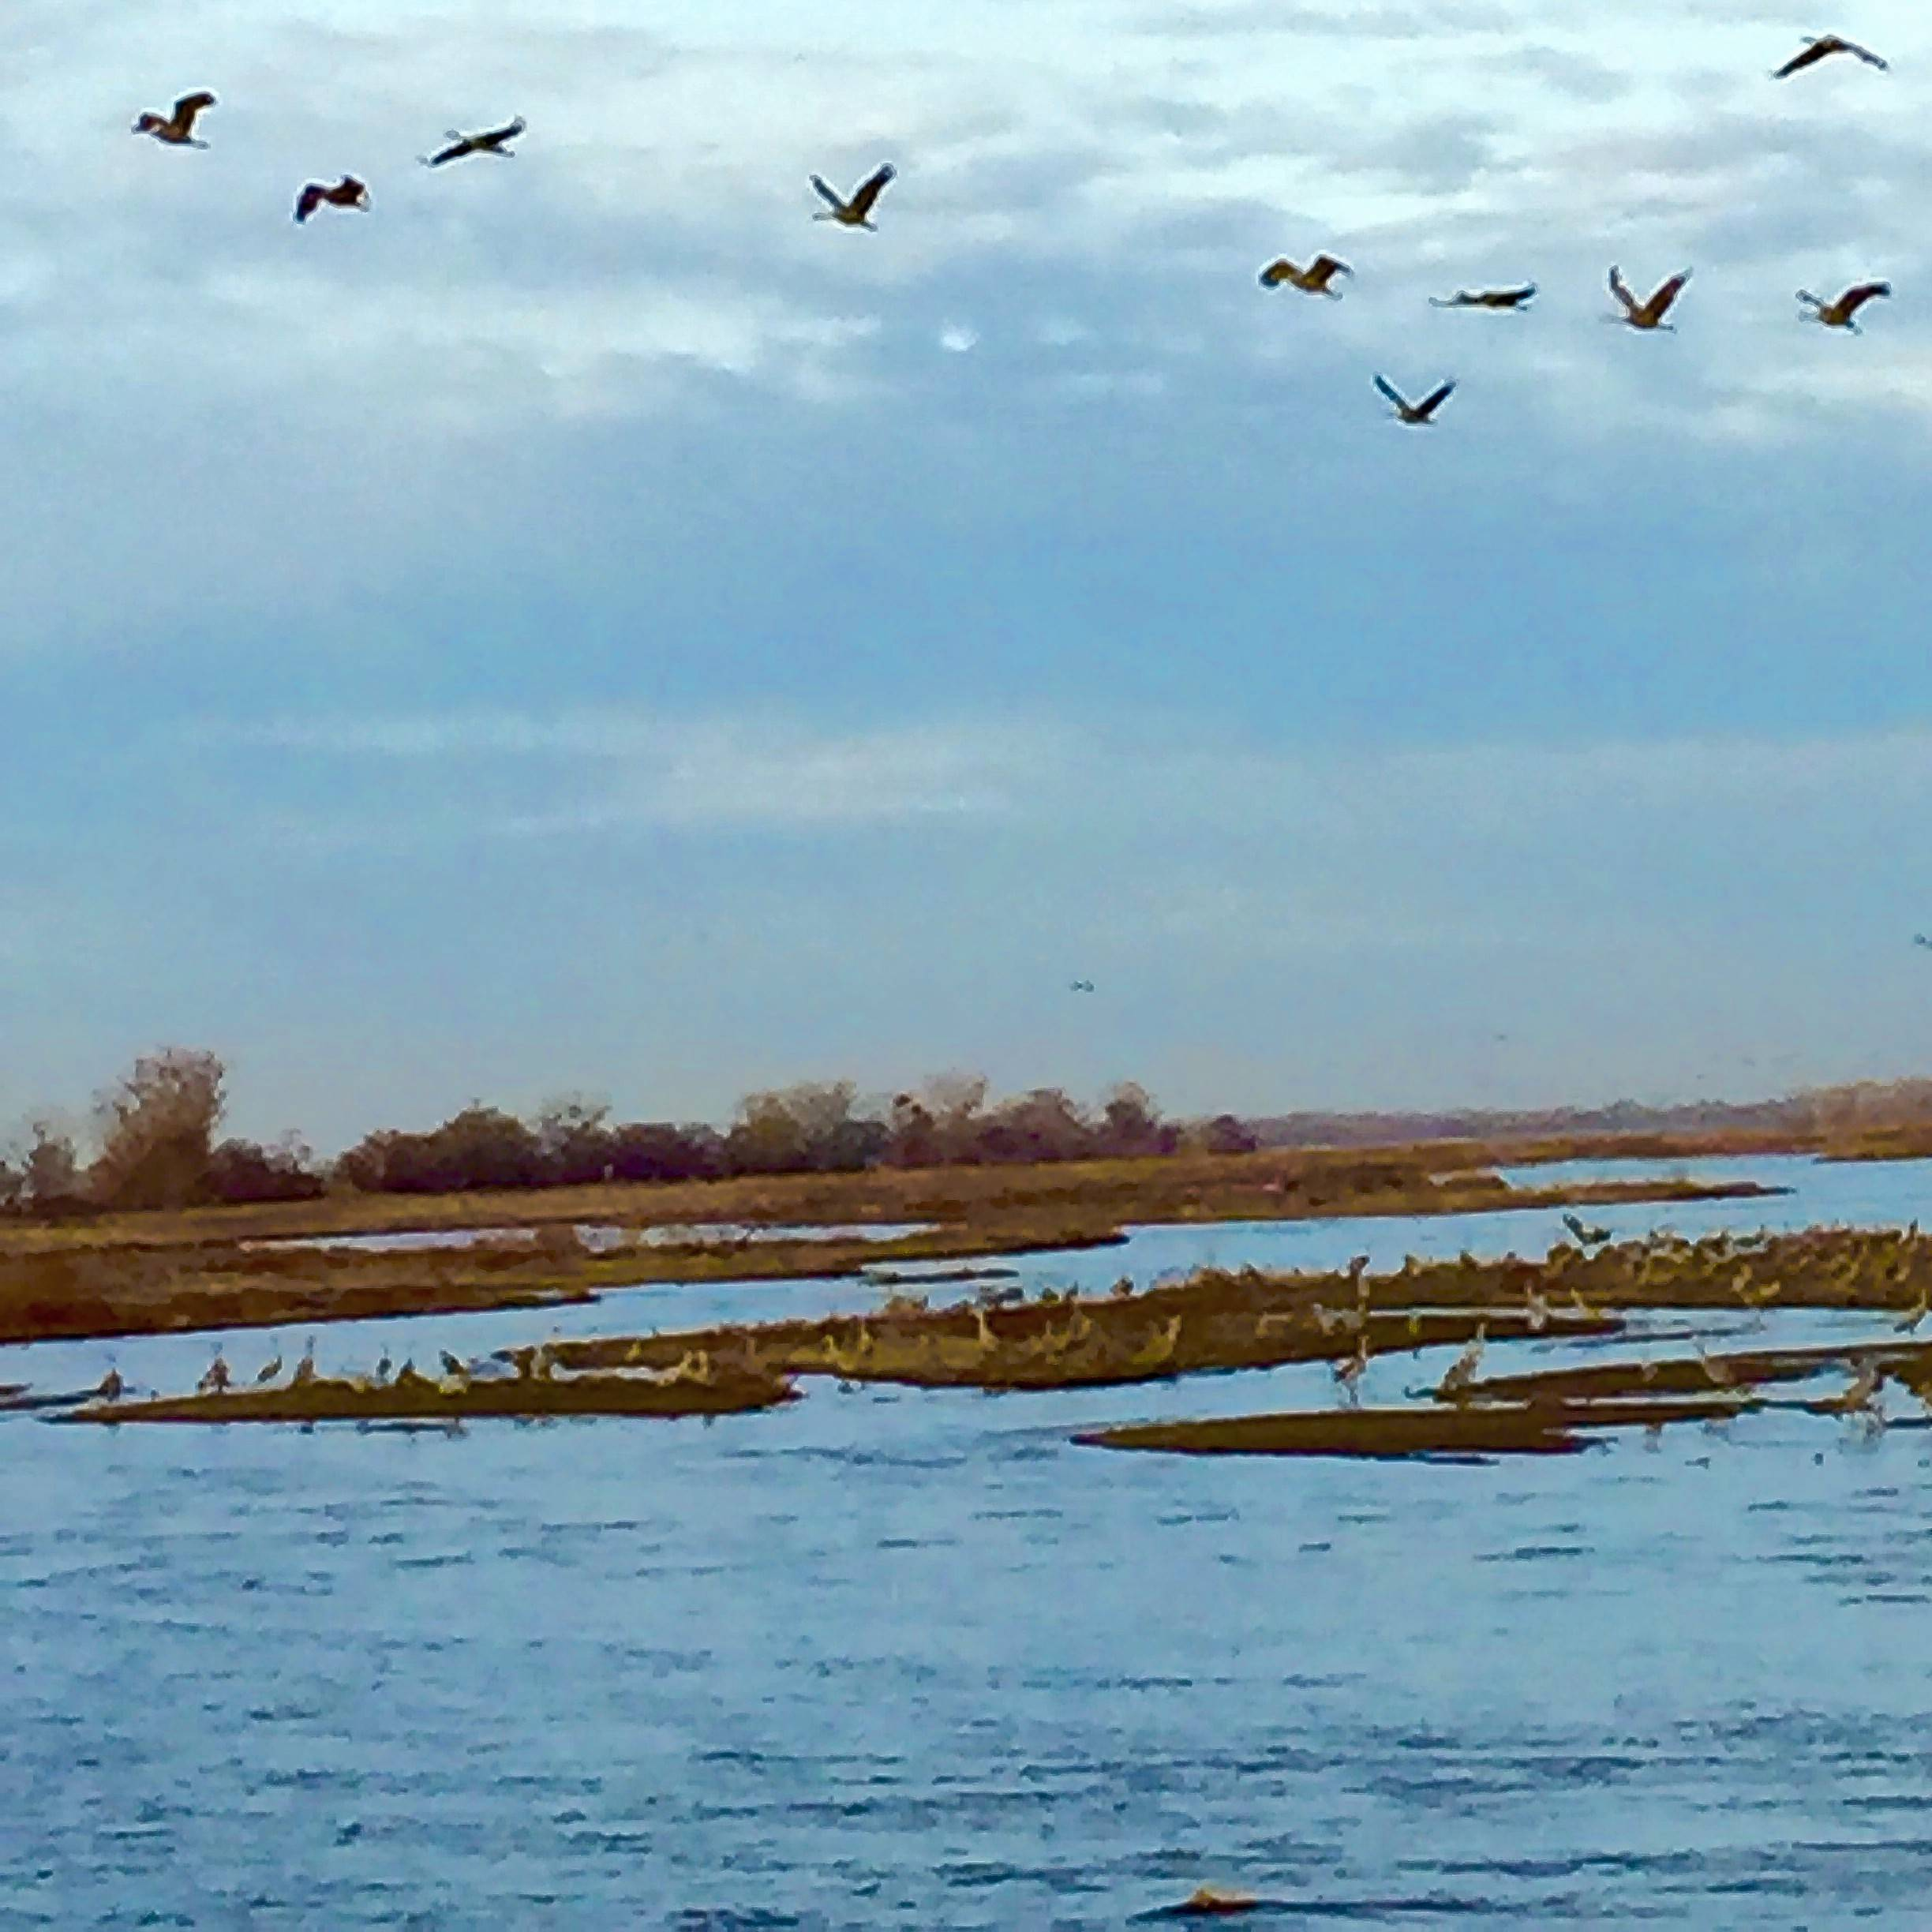 Even casual photographers can capture the Sandhill cranes in migration along Nebraska's Platte River valley.